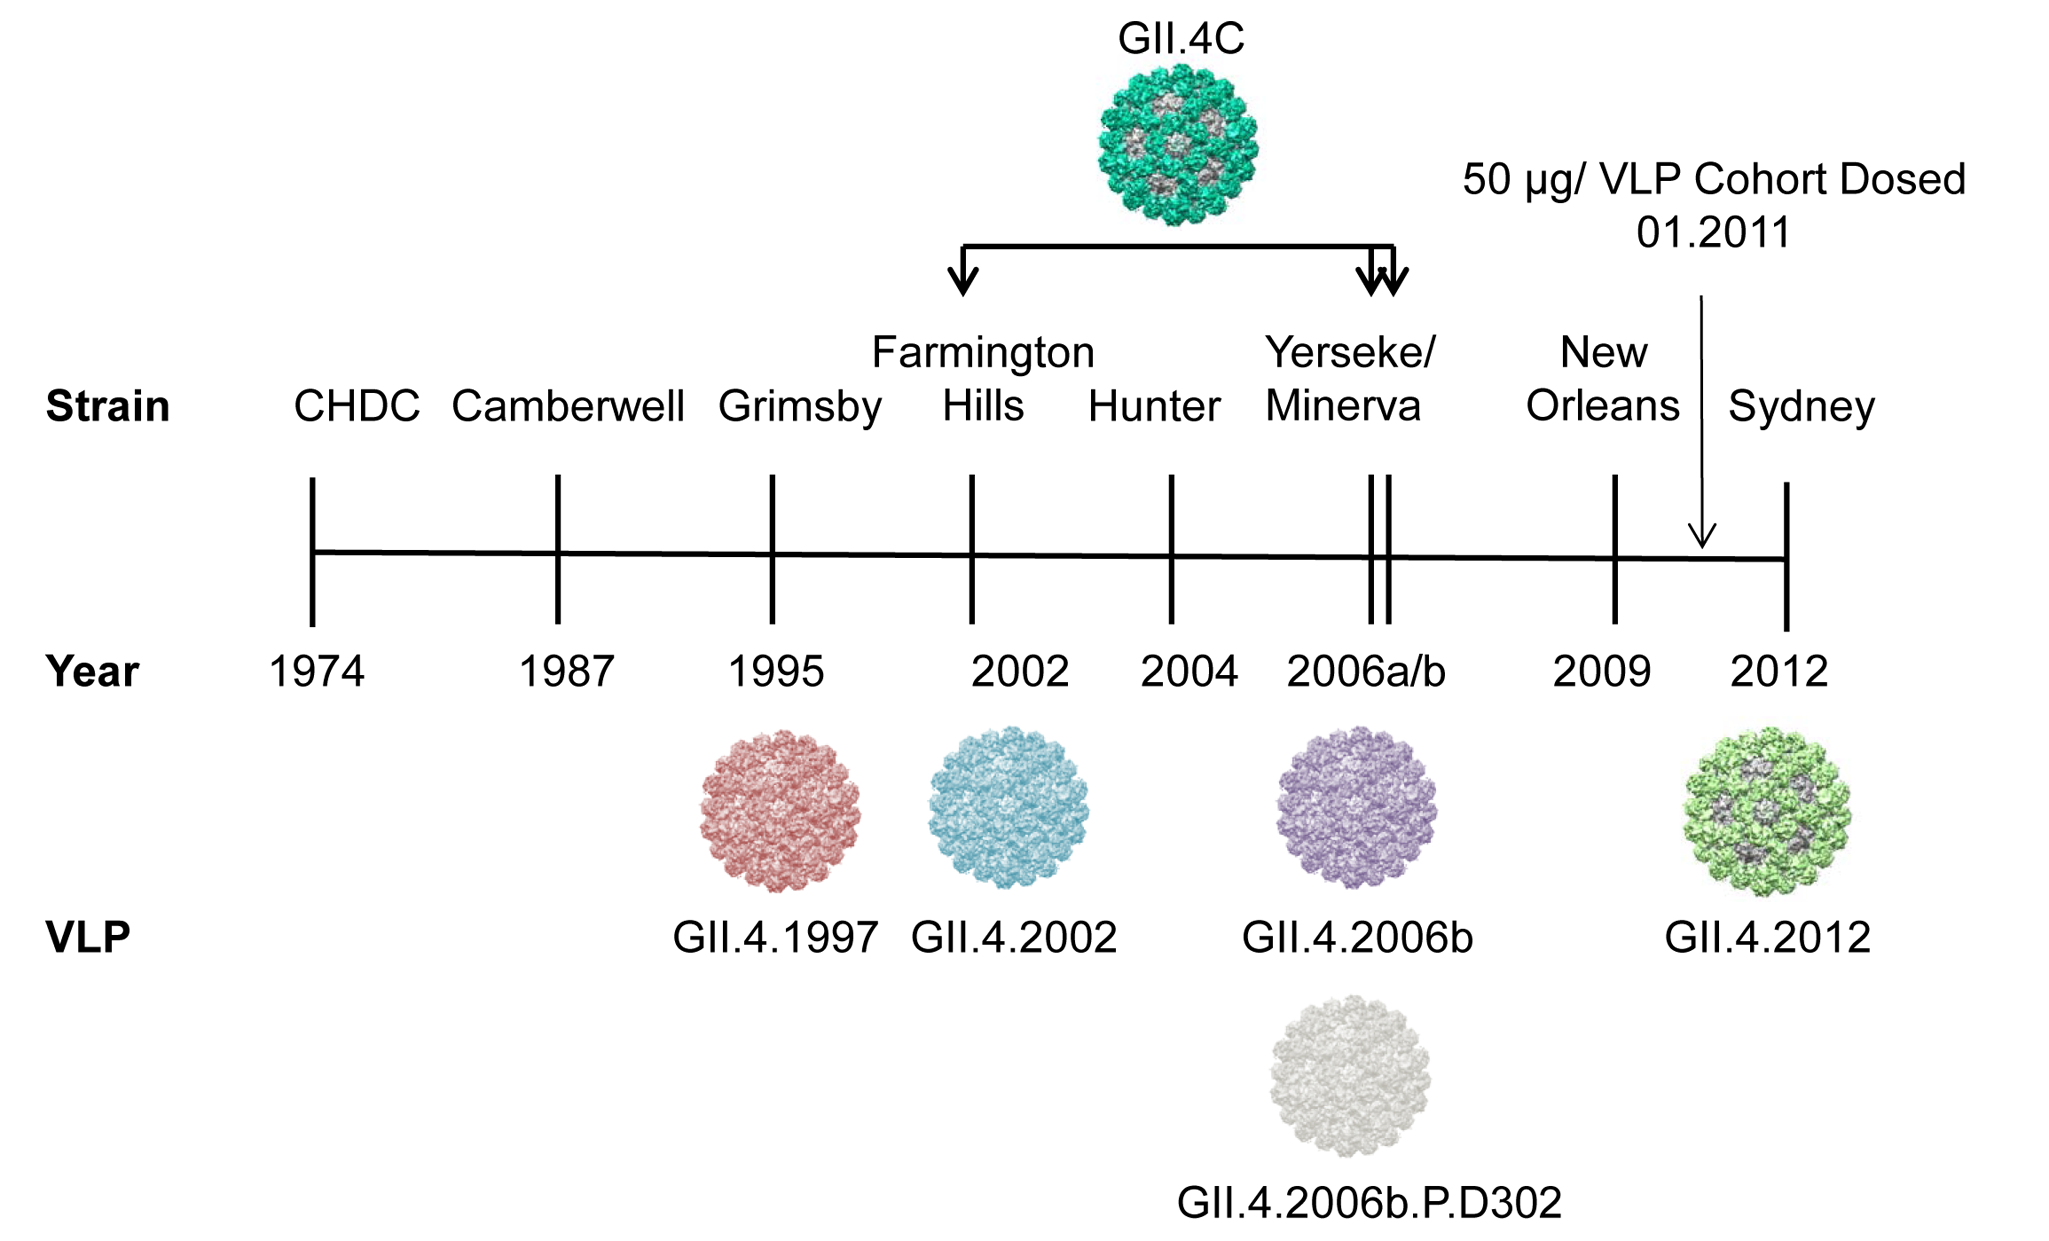 Temporal relationship between epidemiologically important GII.4 strains, relative to the virus-like particles and sera used in this study.